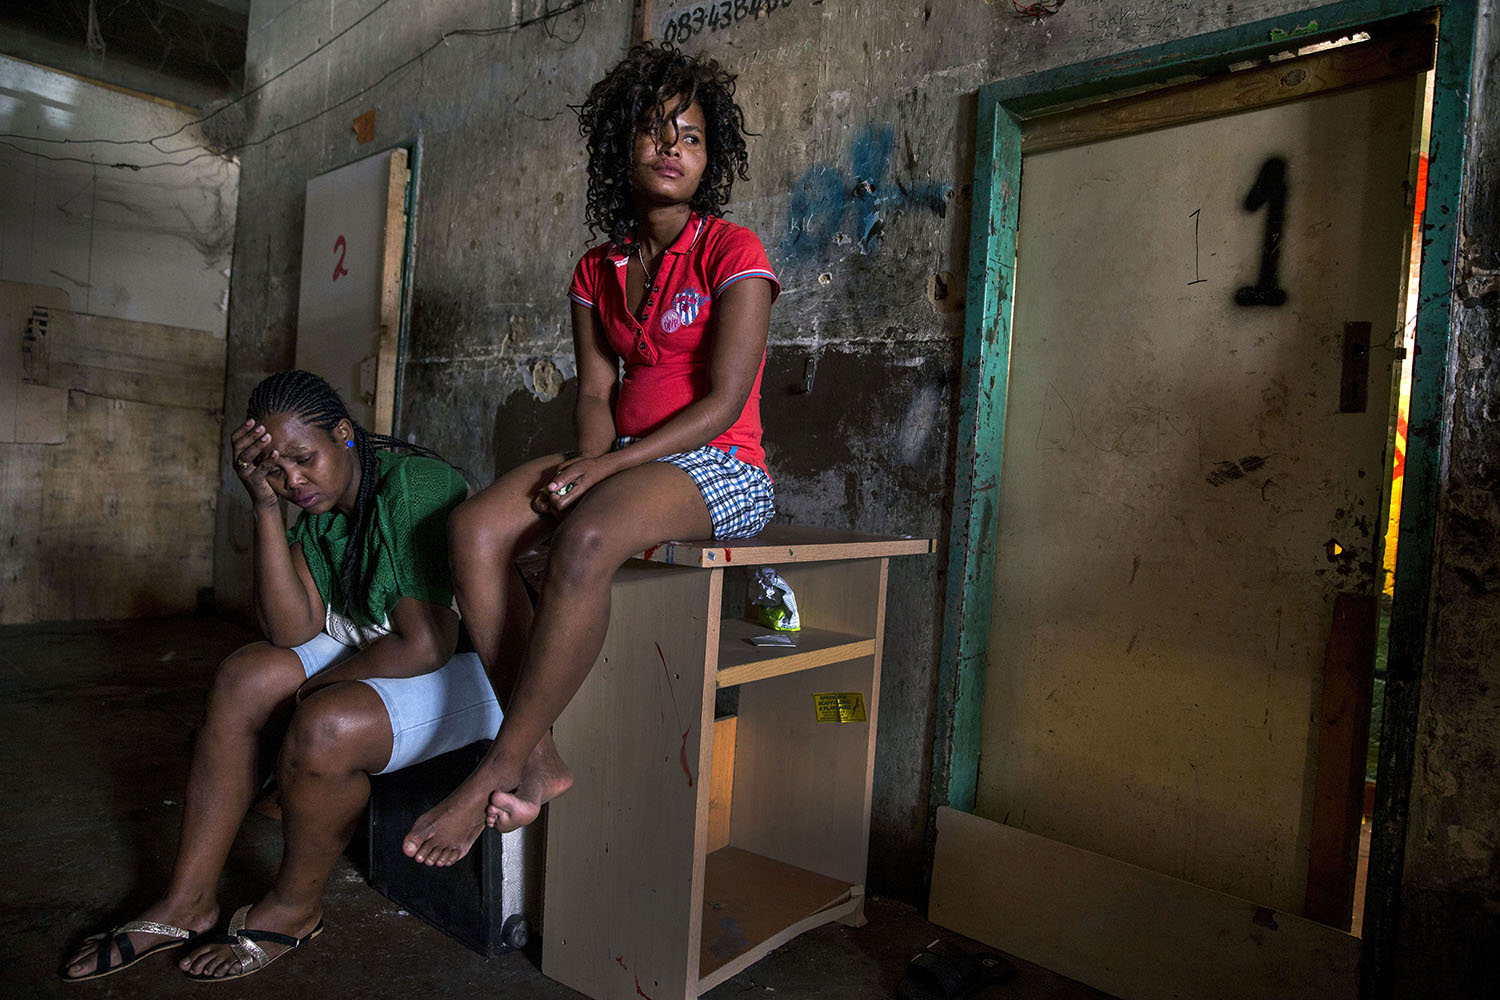 African migrant residents at one of the  derelict buildings, May 22, 2015.